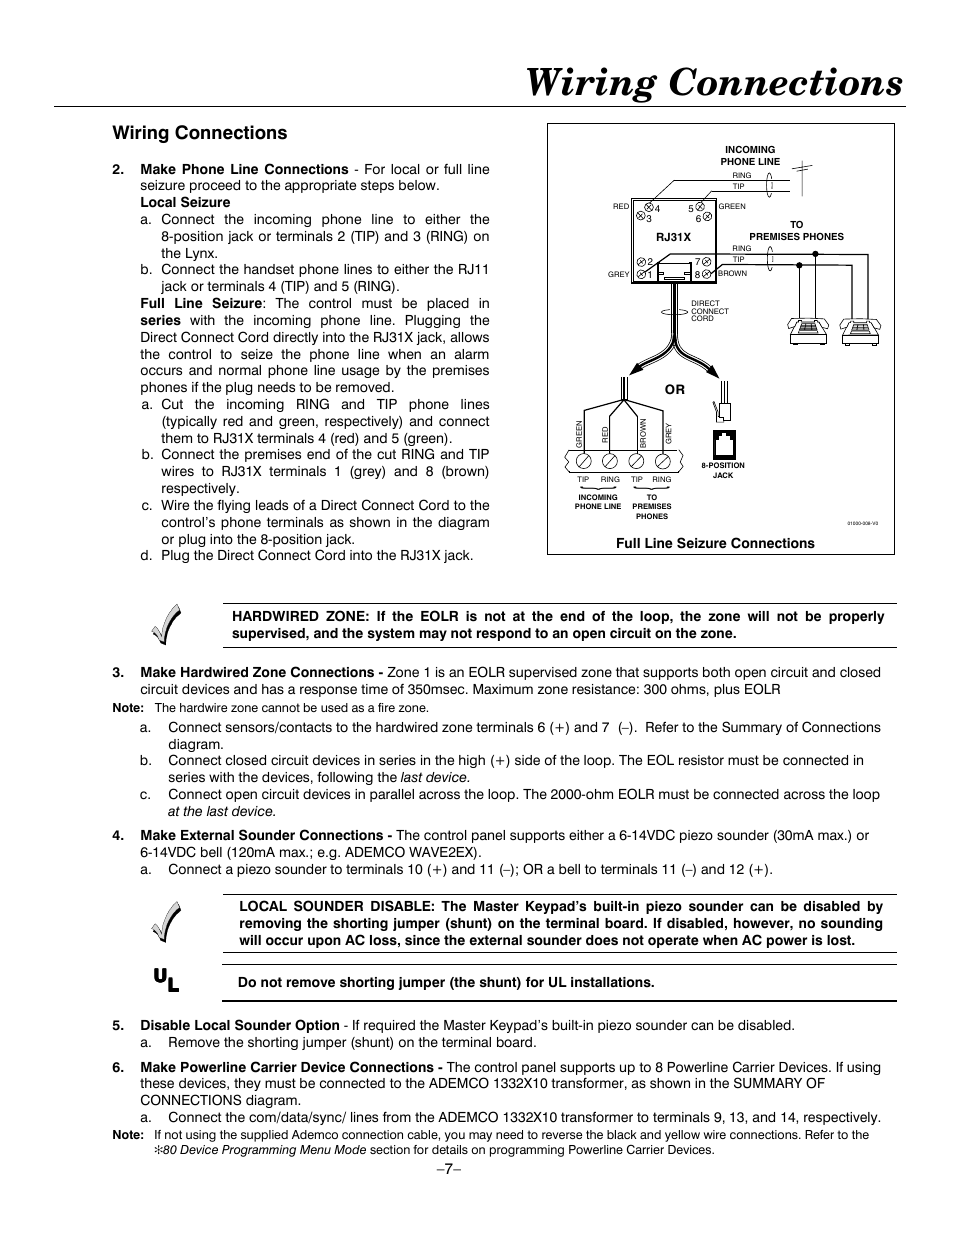 dsl wiring diagram phone line wiring rj31x jack line seizure wiring connections | honeywell ademco lynxr-en user manual ...